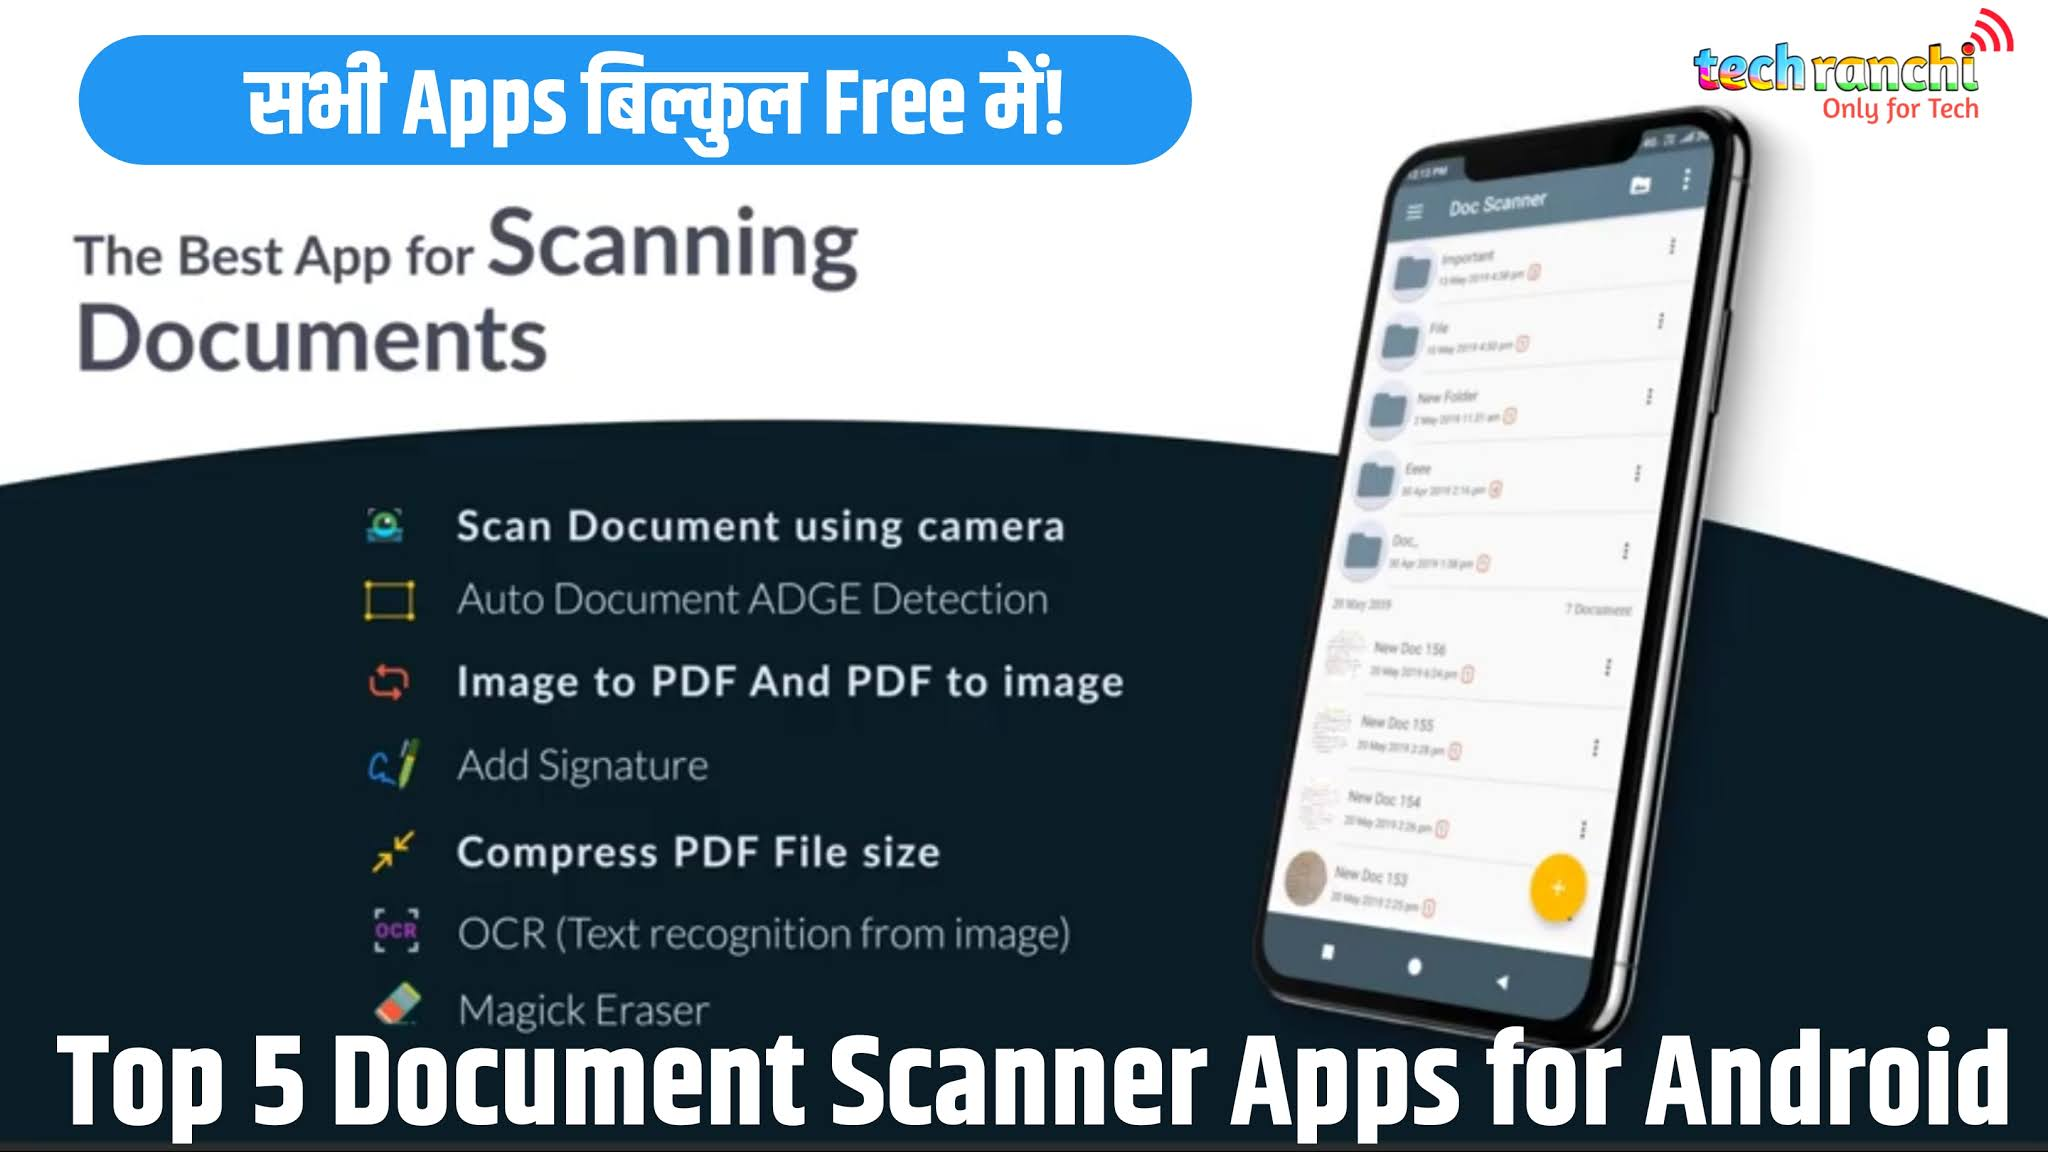 Mobile Document Scanner, Scanner Apps, Pdf Scanner, CamScanner, Images Scanner, Techranchi,